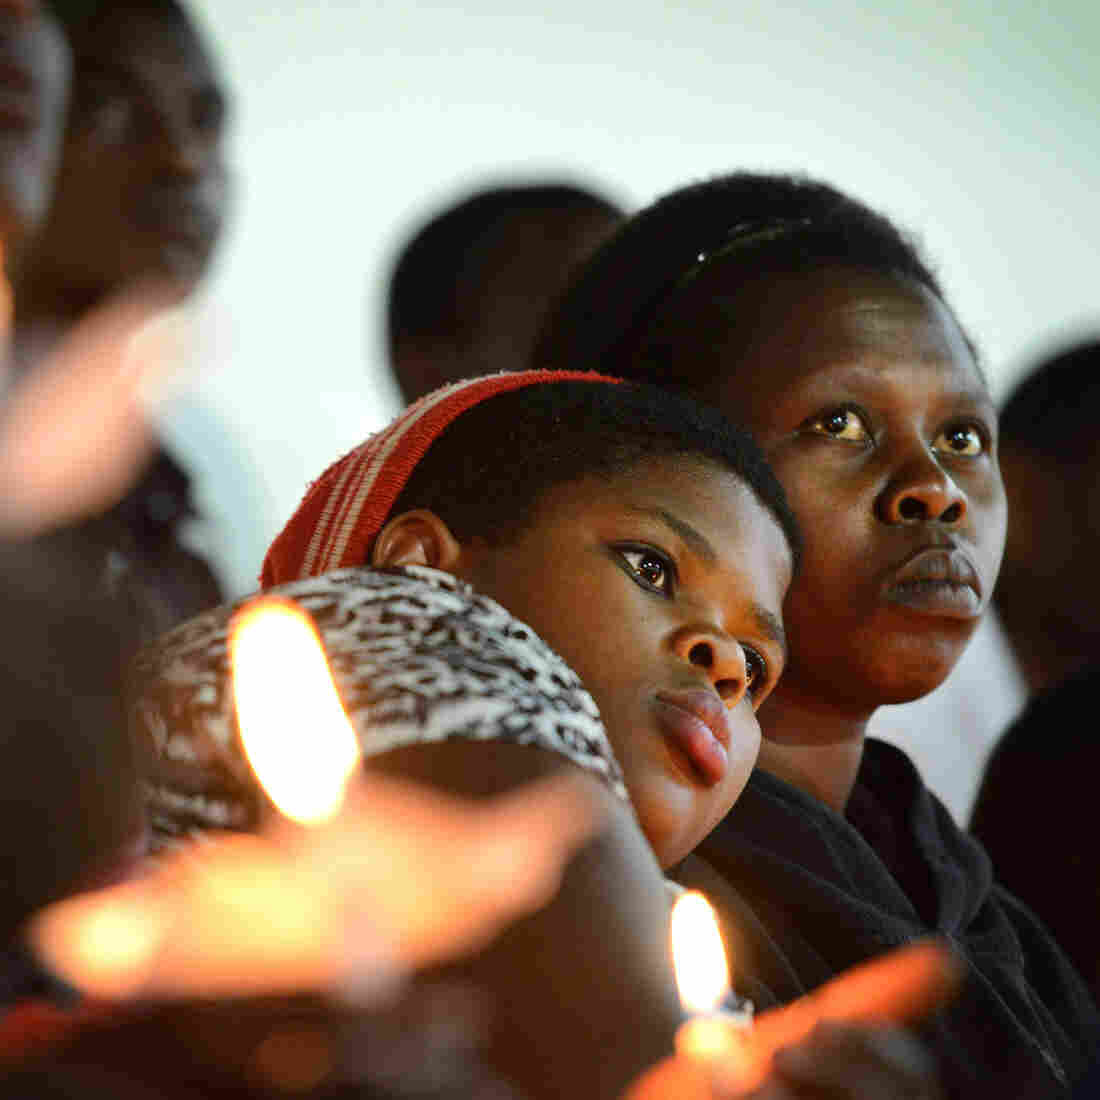 Rwanda Honors Dead, Celebrates Progress, 20 Years After Genocide